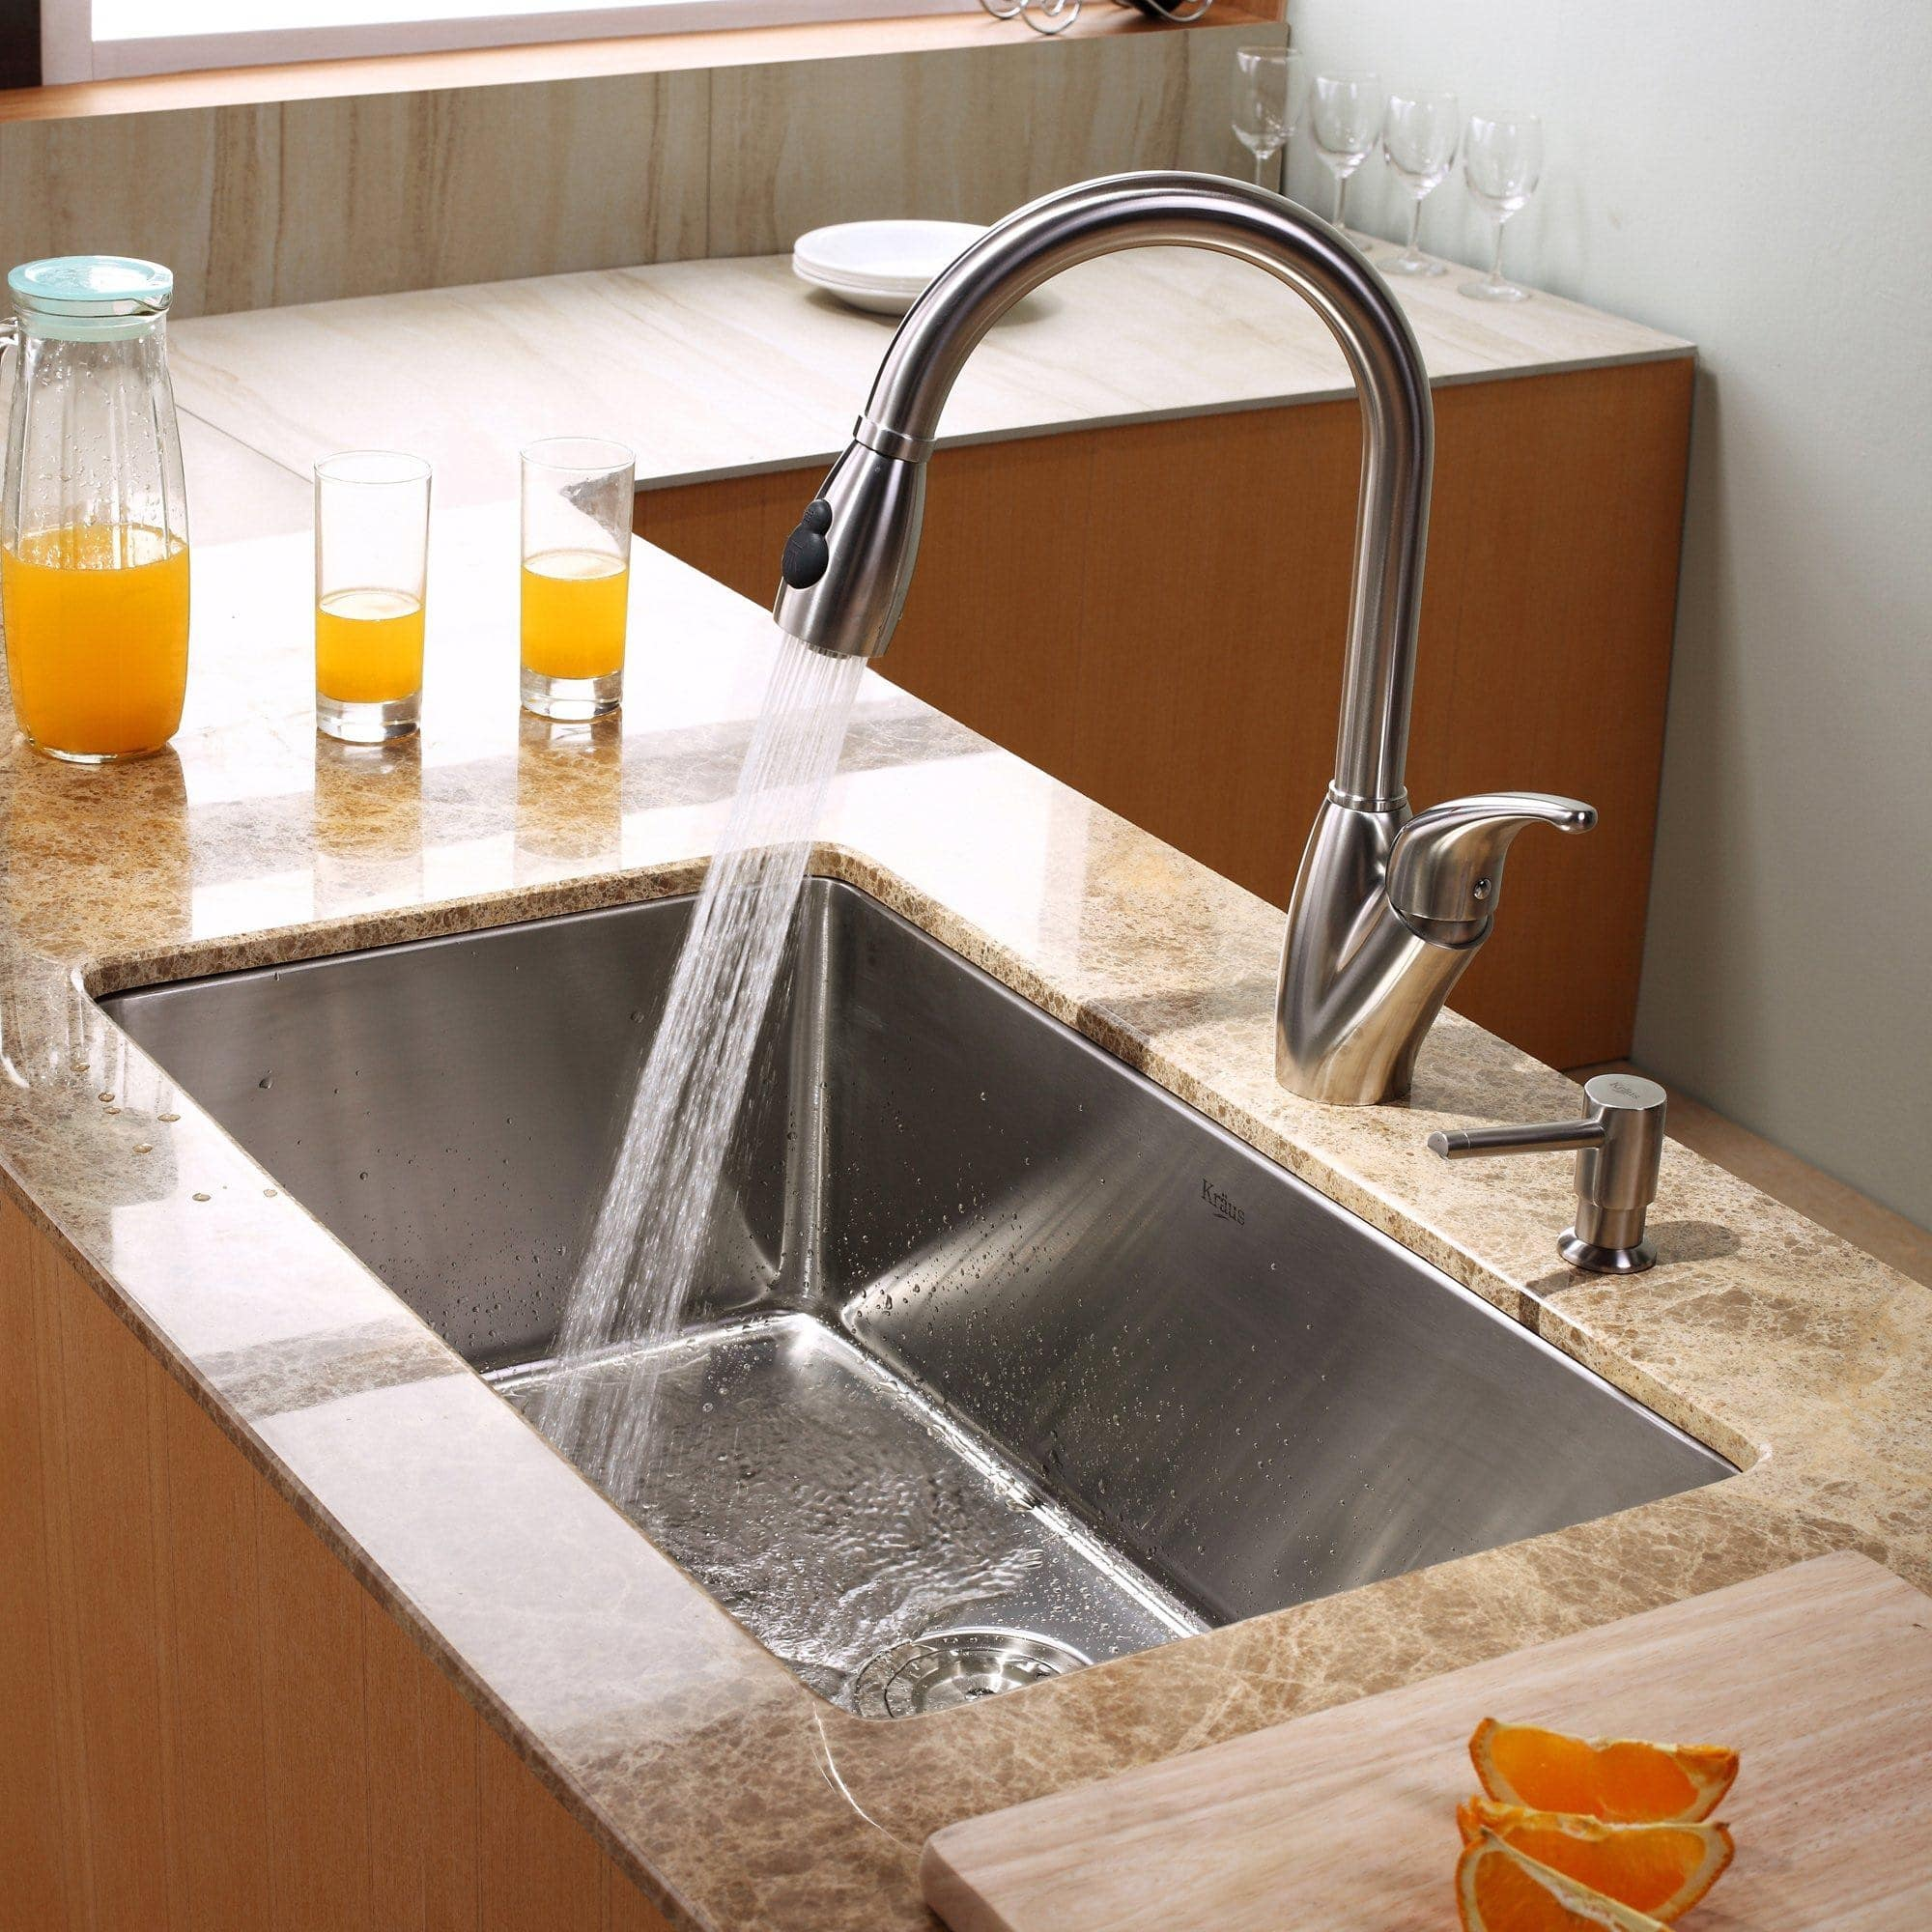 Kraus KHU10030KPF2120SD20 30 Inch Undermount Single Bowl Stainless Steel  Kitchen Sink With 16 Gauge, 10 Inch Bowl Depth, Rear Set Drain Opening And  Stone ...